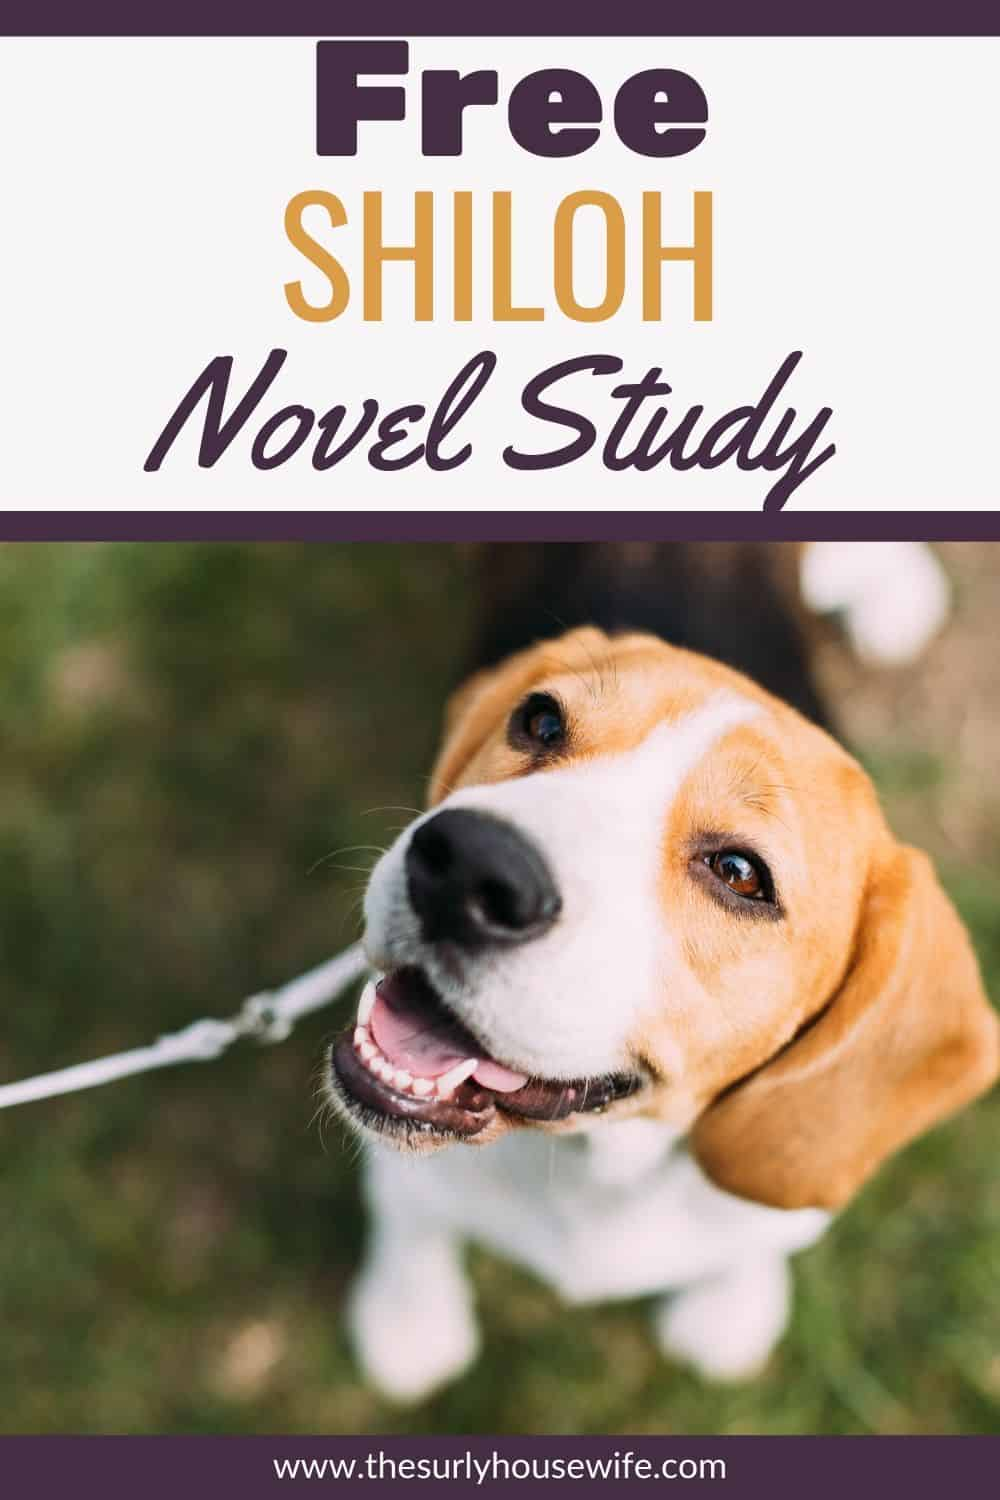 Looking for a reading guide about the book Shiloh? Searching for lesson plans or activities about Shiloh? Check out this post for discussion questions as well as why Shiloh is the perfect book for a unit study!